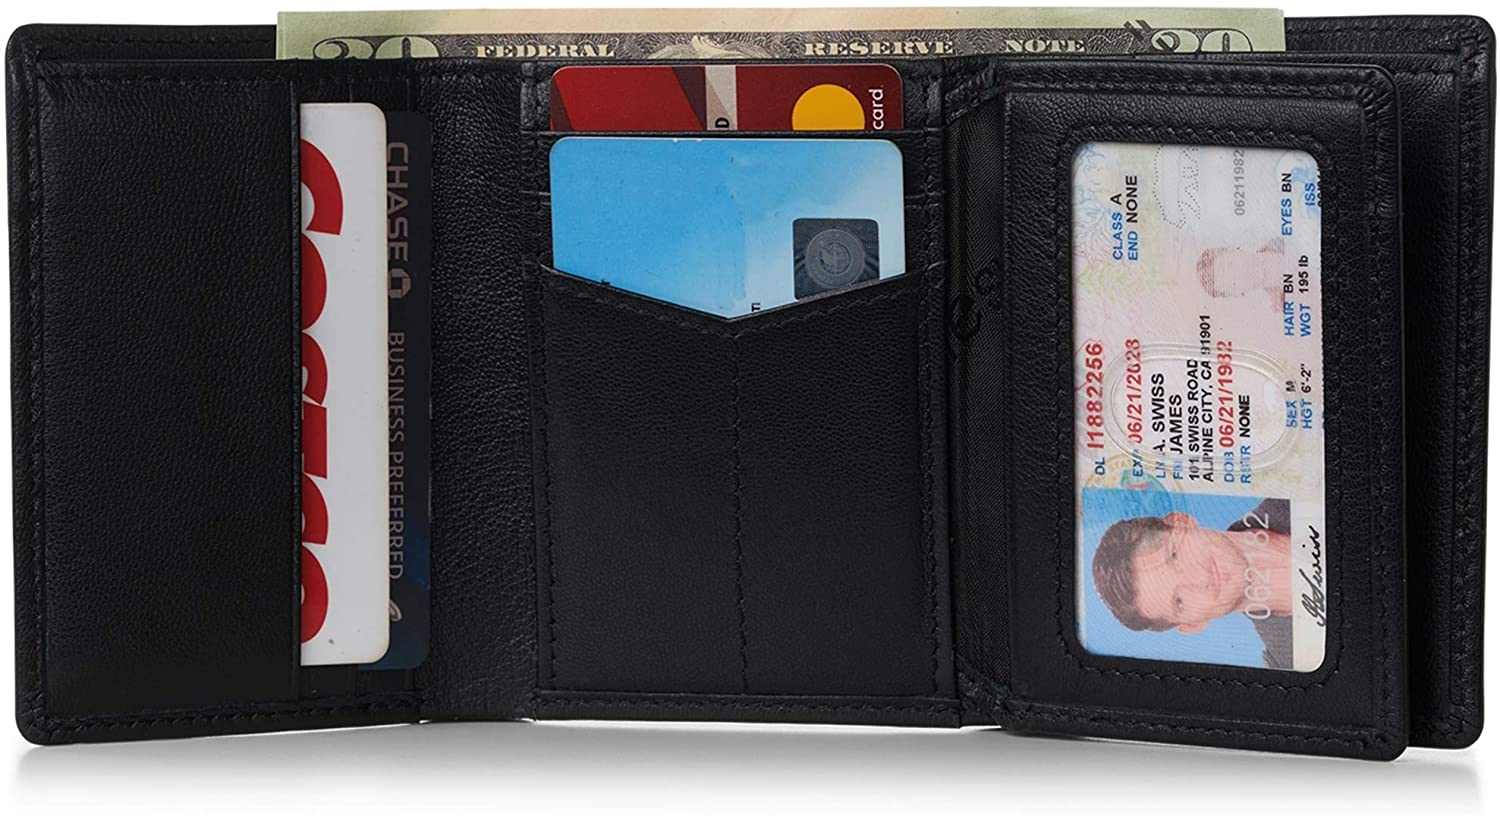 Alpine Swiss RFID Mens Theo OVERSIZED Trifold Wallet Deluxe Capacity With Divided Bill Section Camden Collection Comes in a Gift Box